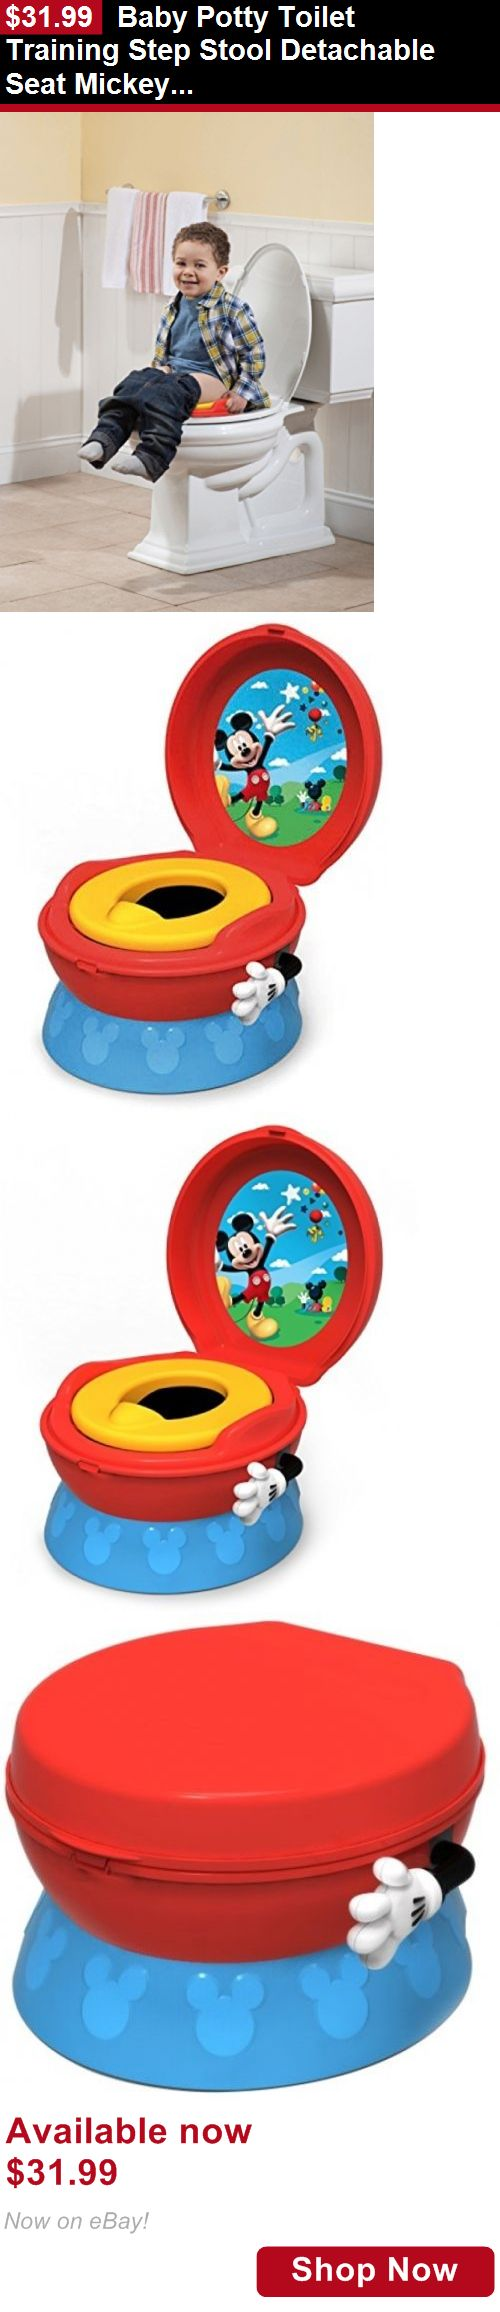 Potty Training: Baby Potty Toilet Training Step Stool Detachable Seat Mickey Mouse Kid Bathroom BUY IT NOW ONLY: $31.99